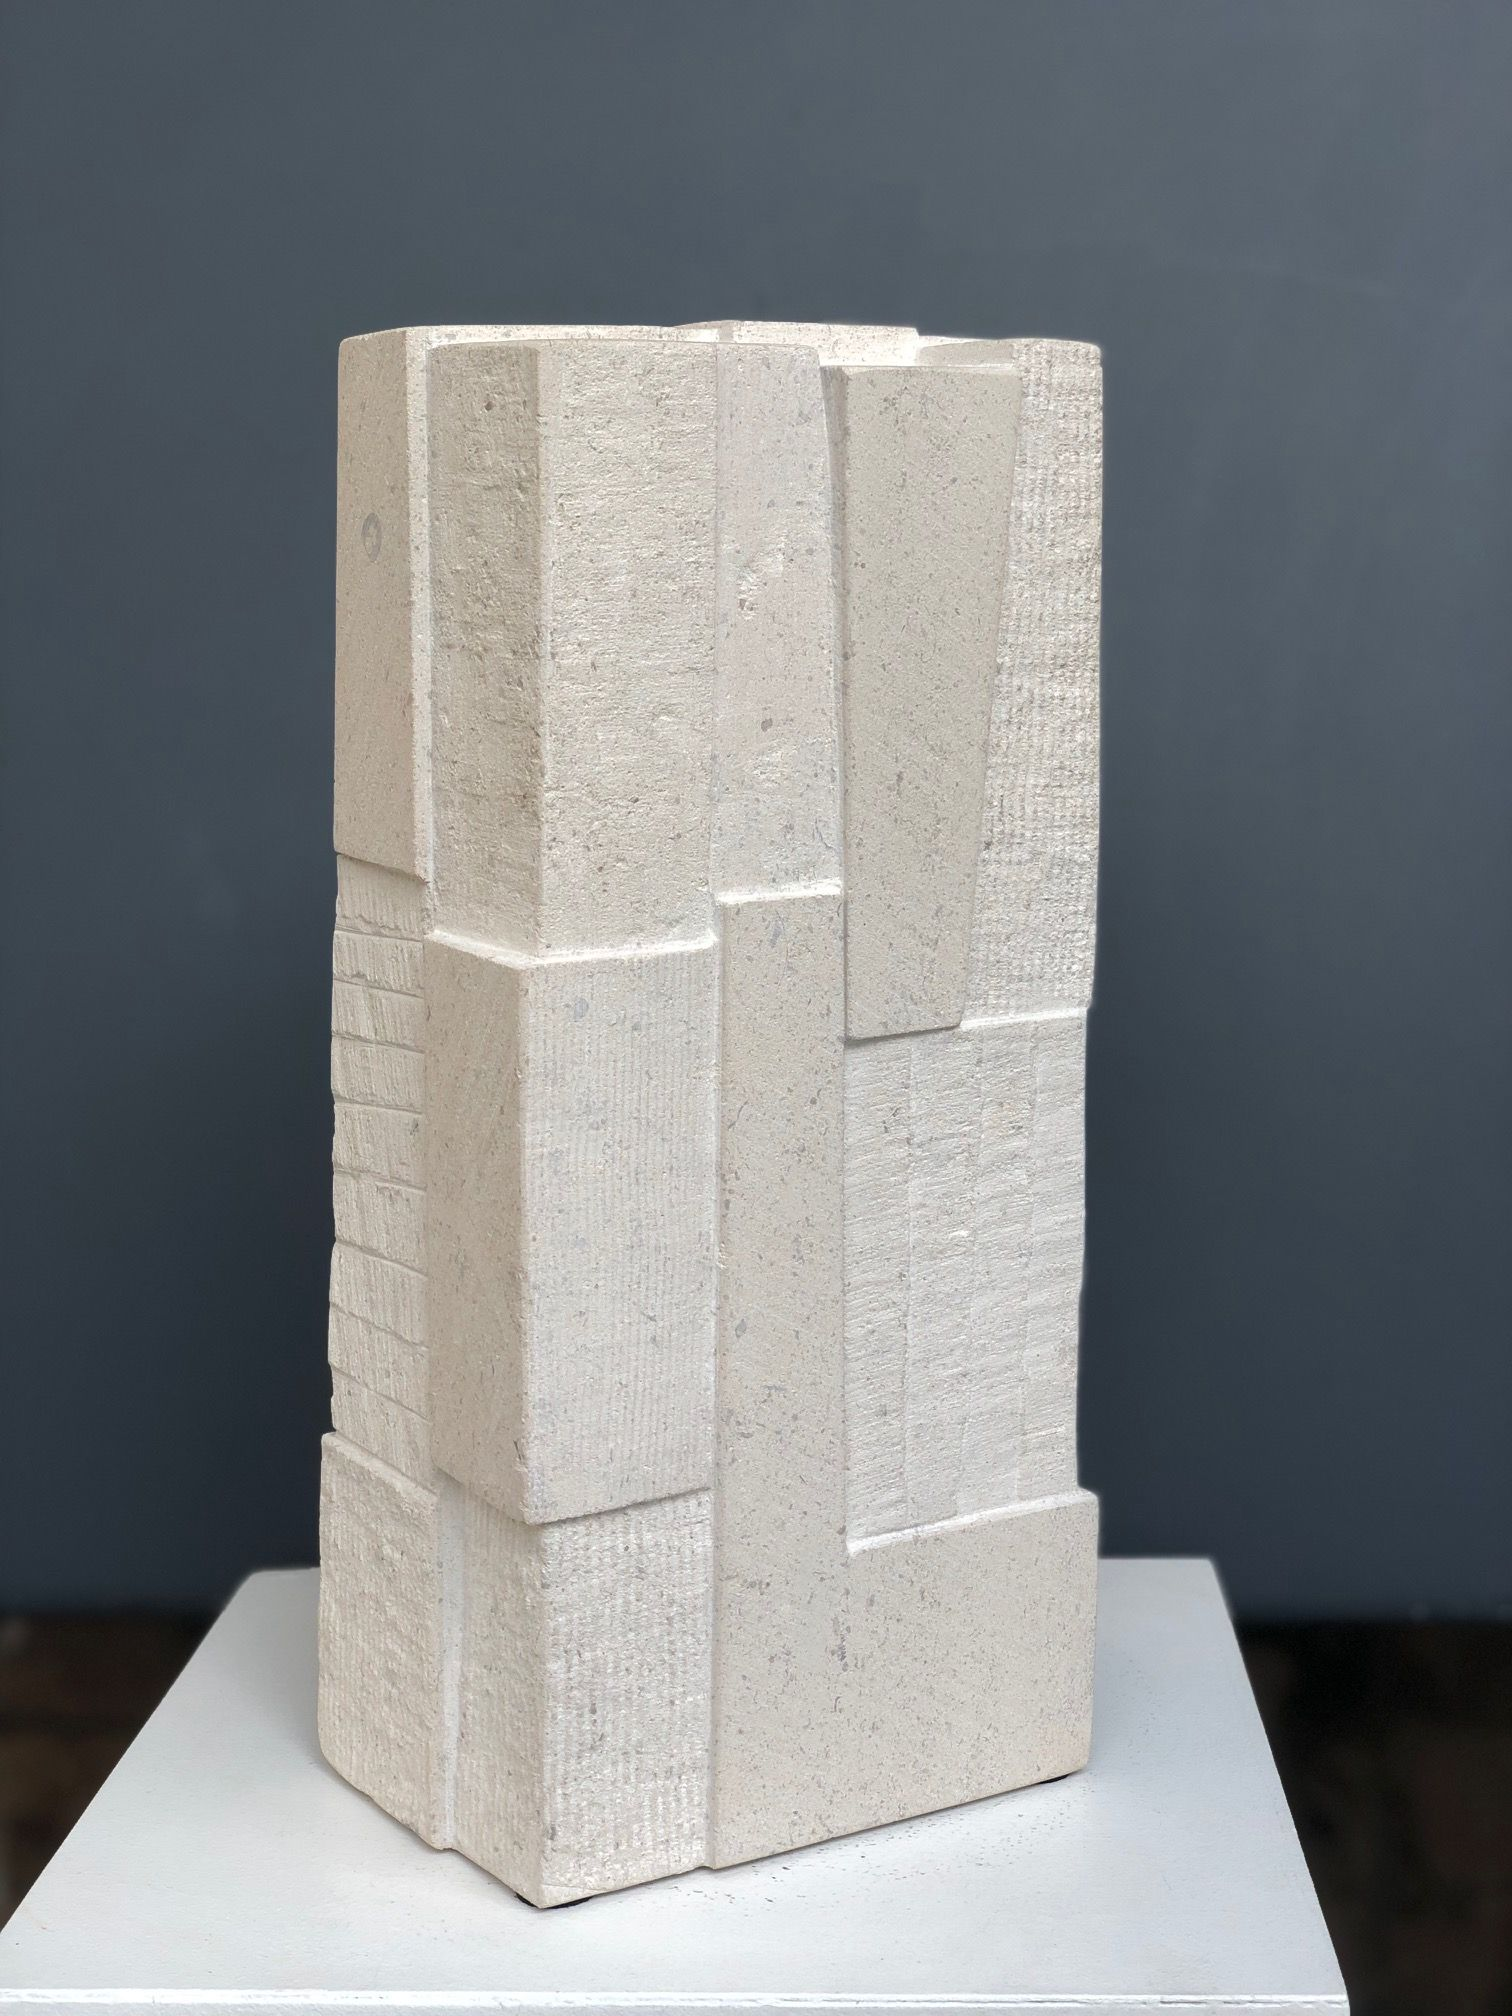 Being stone, Unity series,Delphine Brabant,Sculpture, detail 1